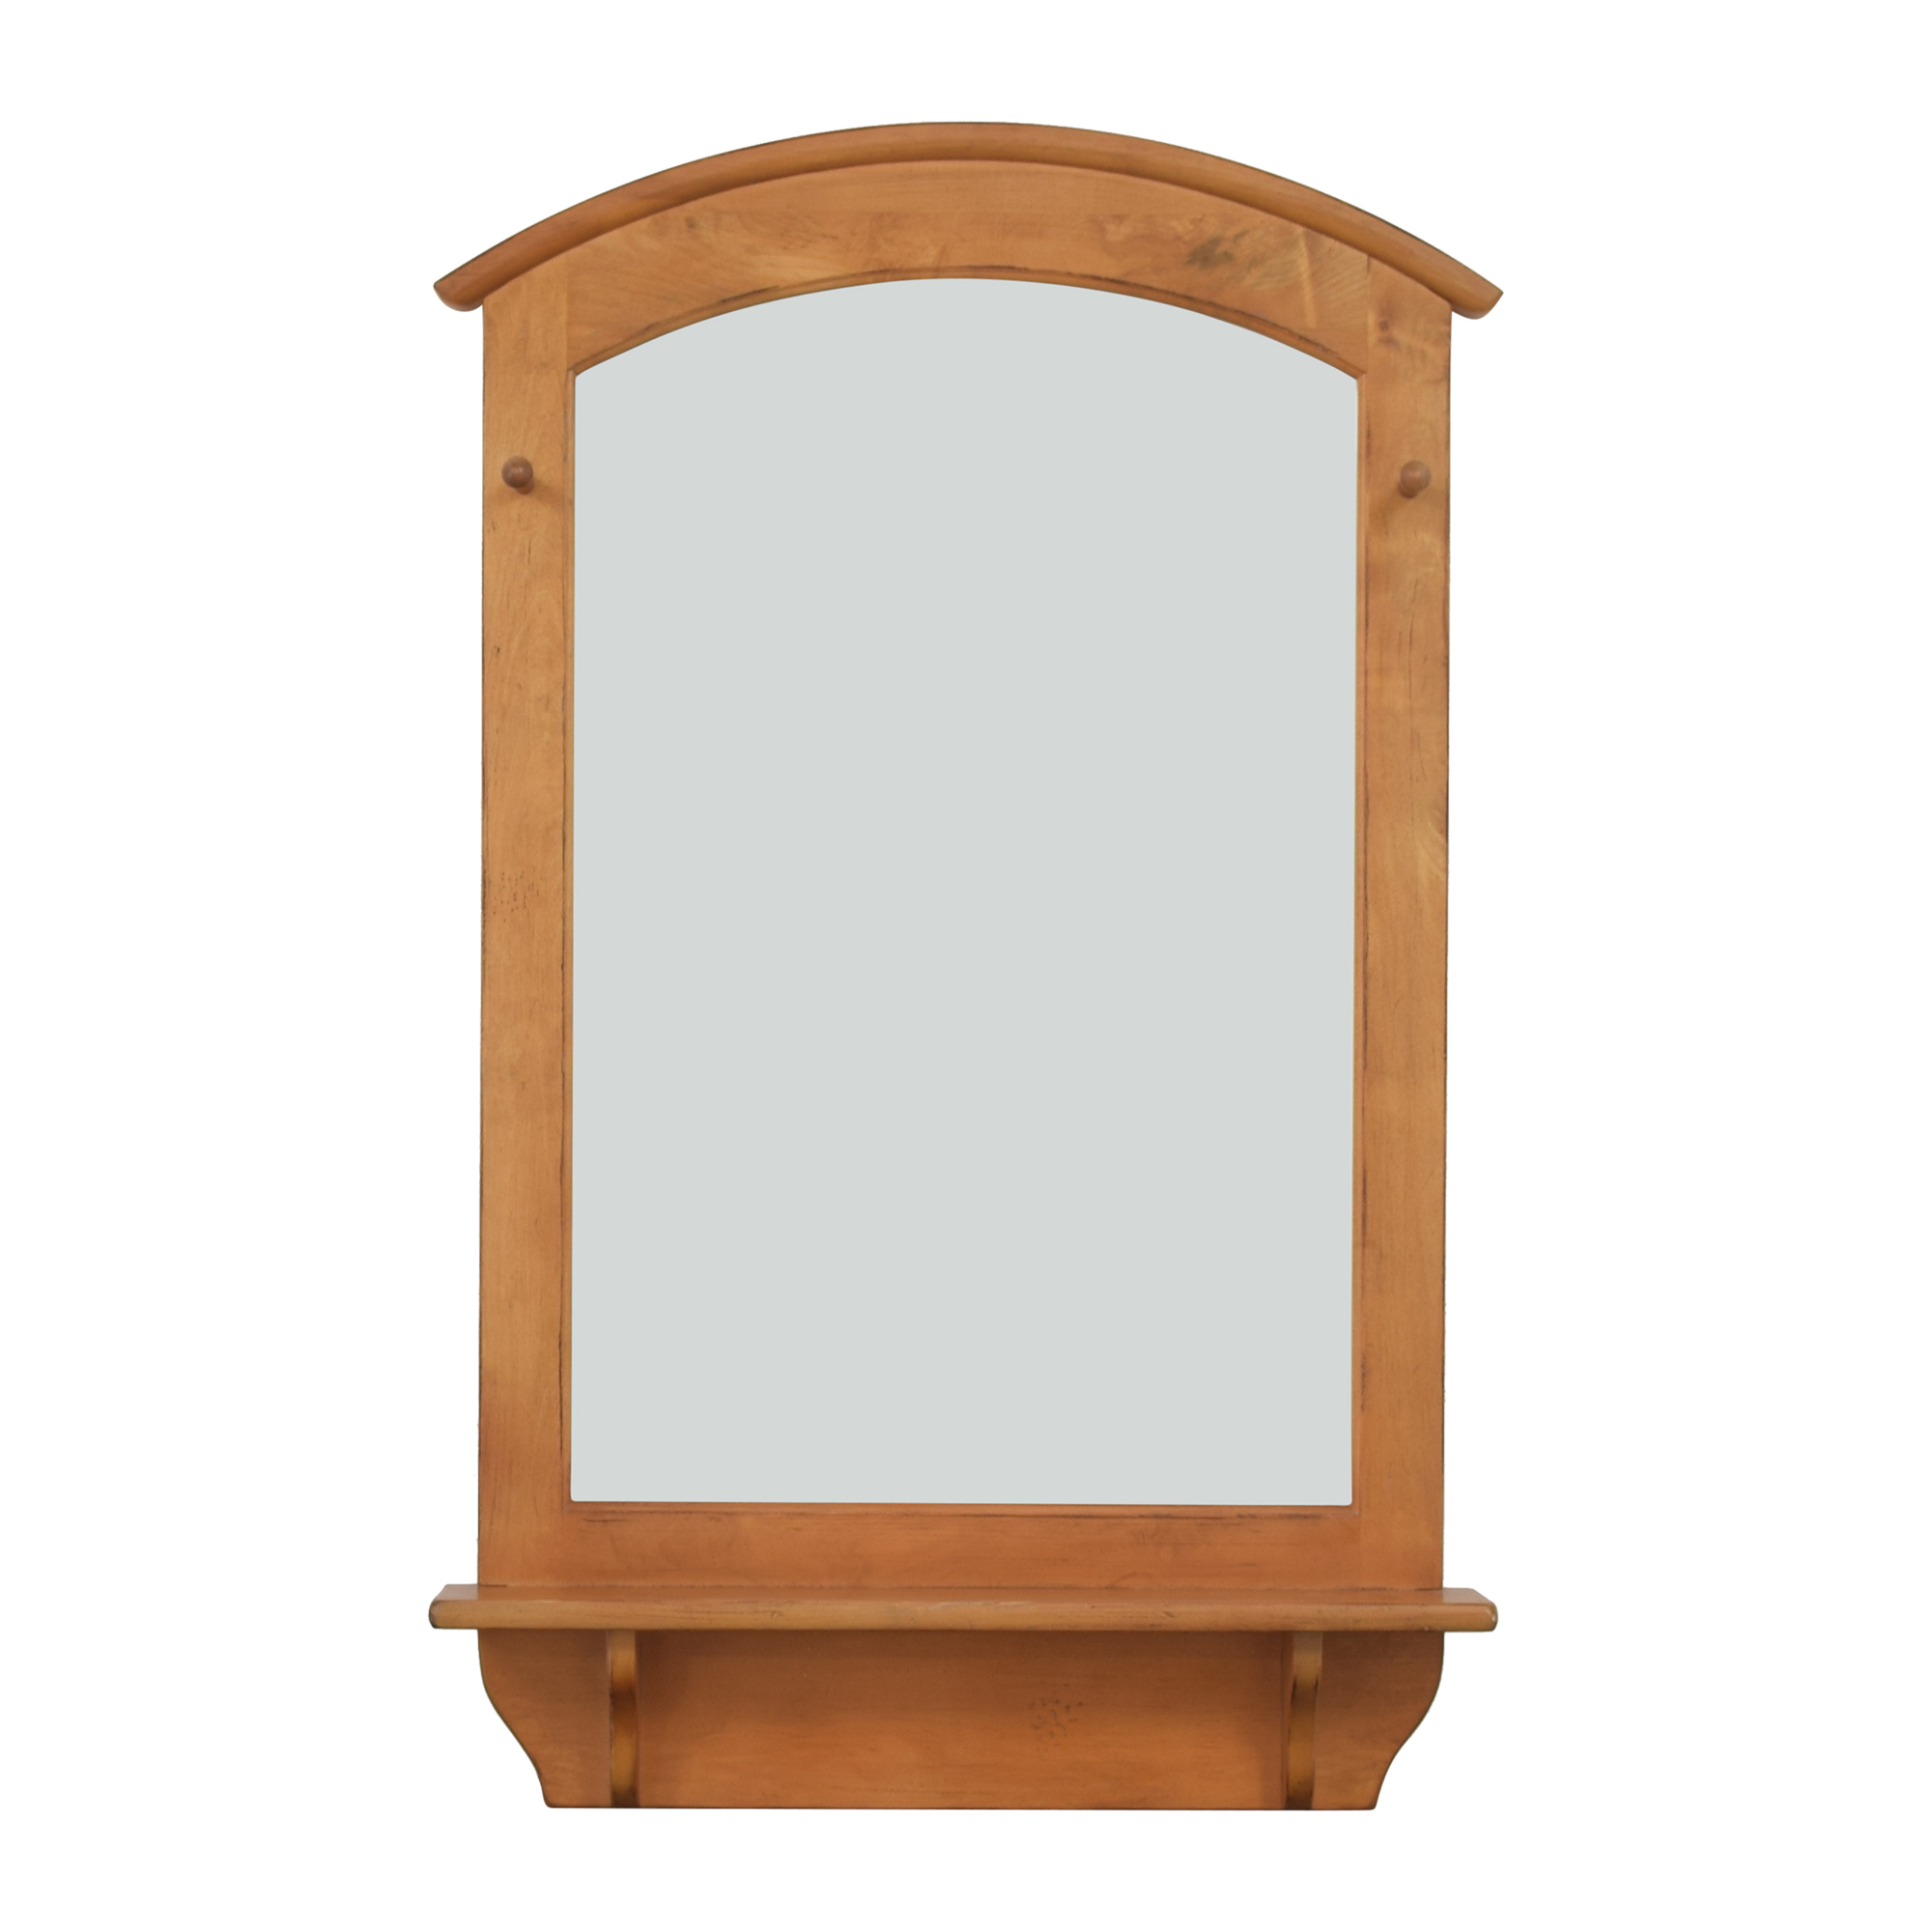 shop Drexel Wall Mirror Drexel Mirrors